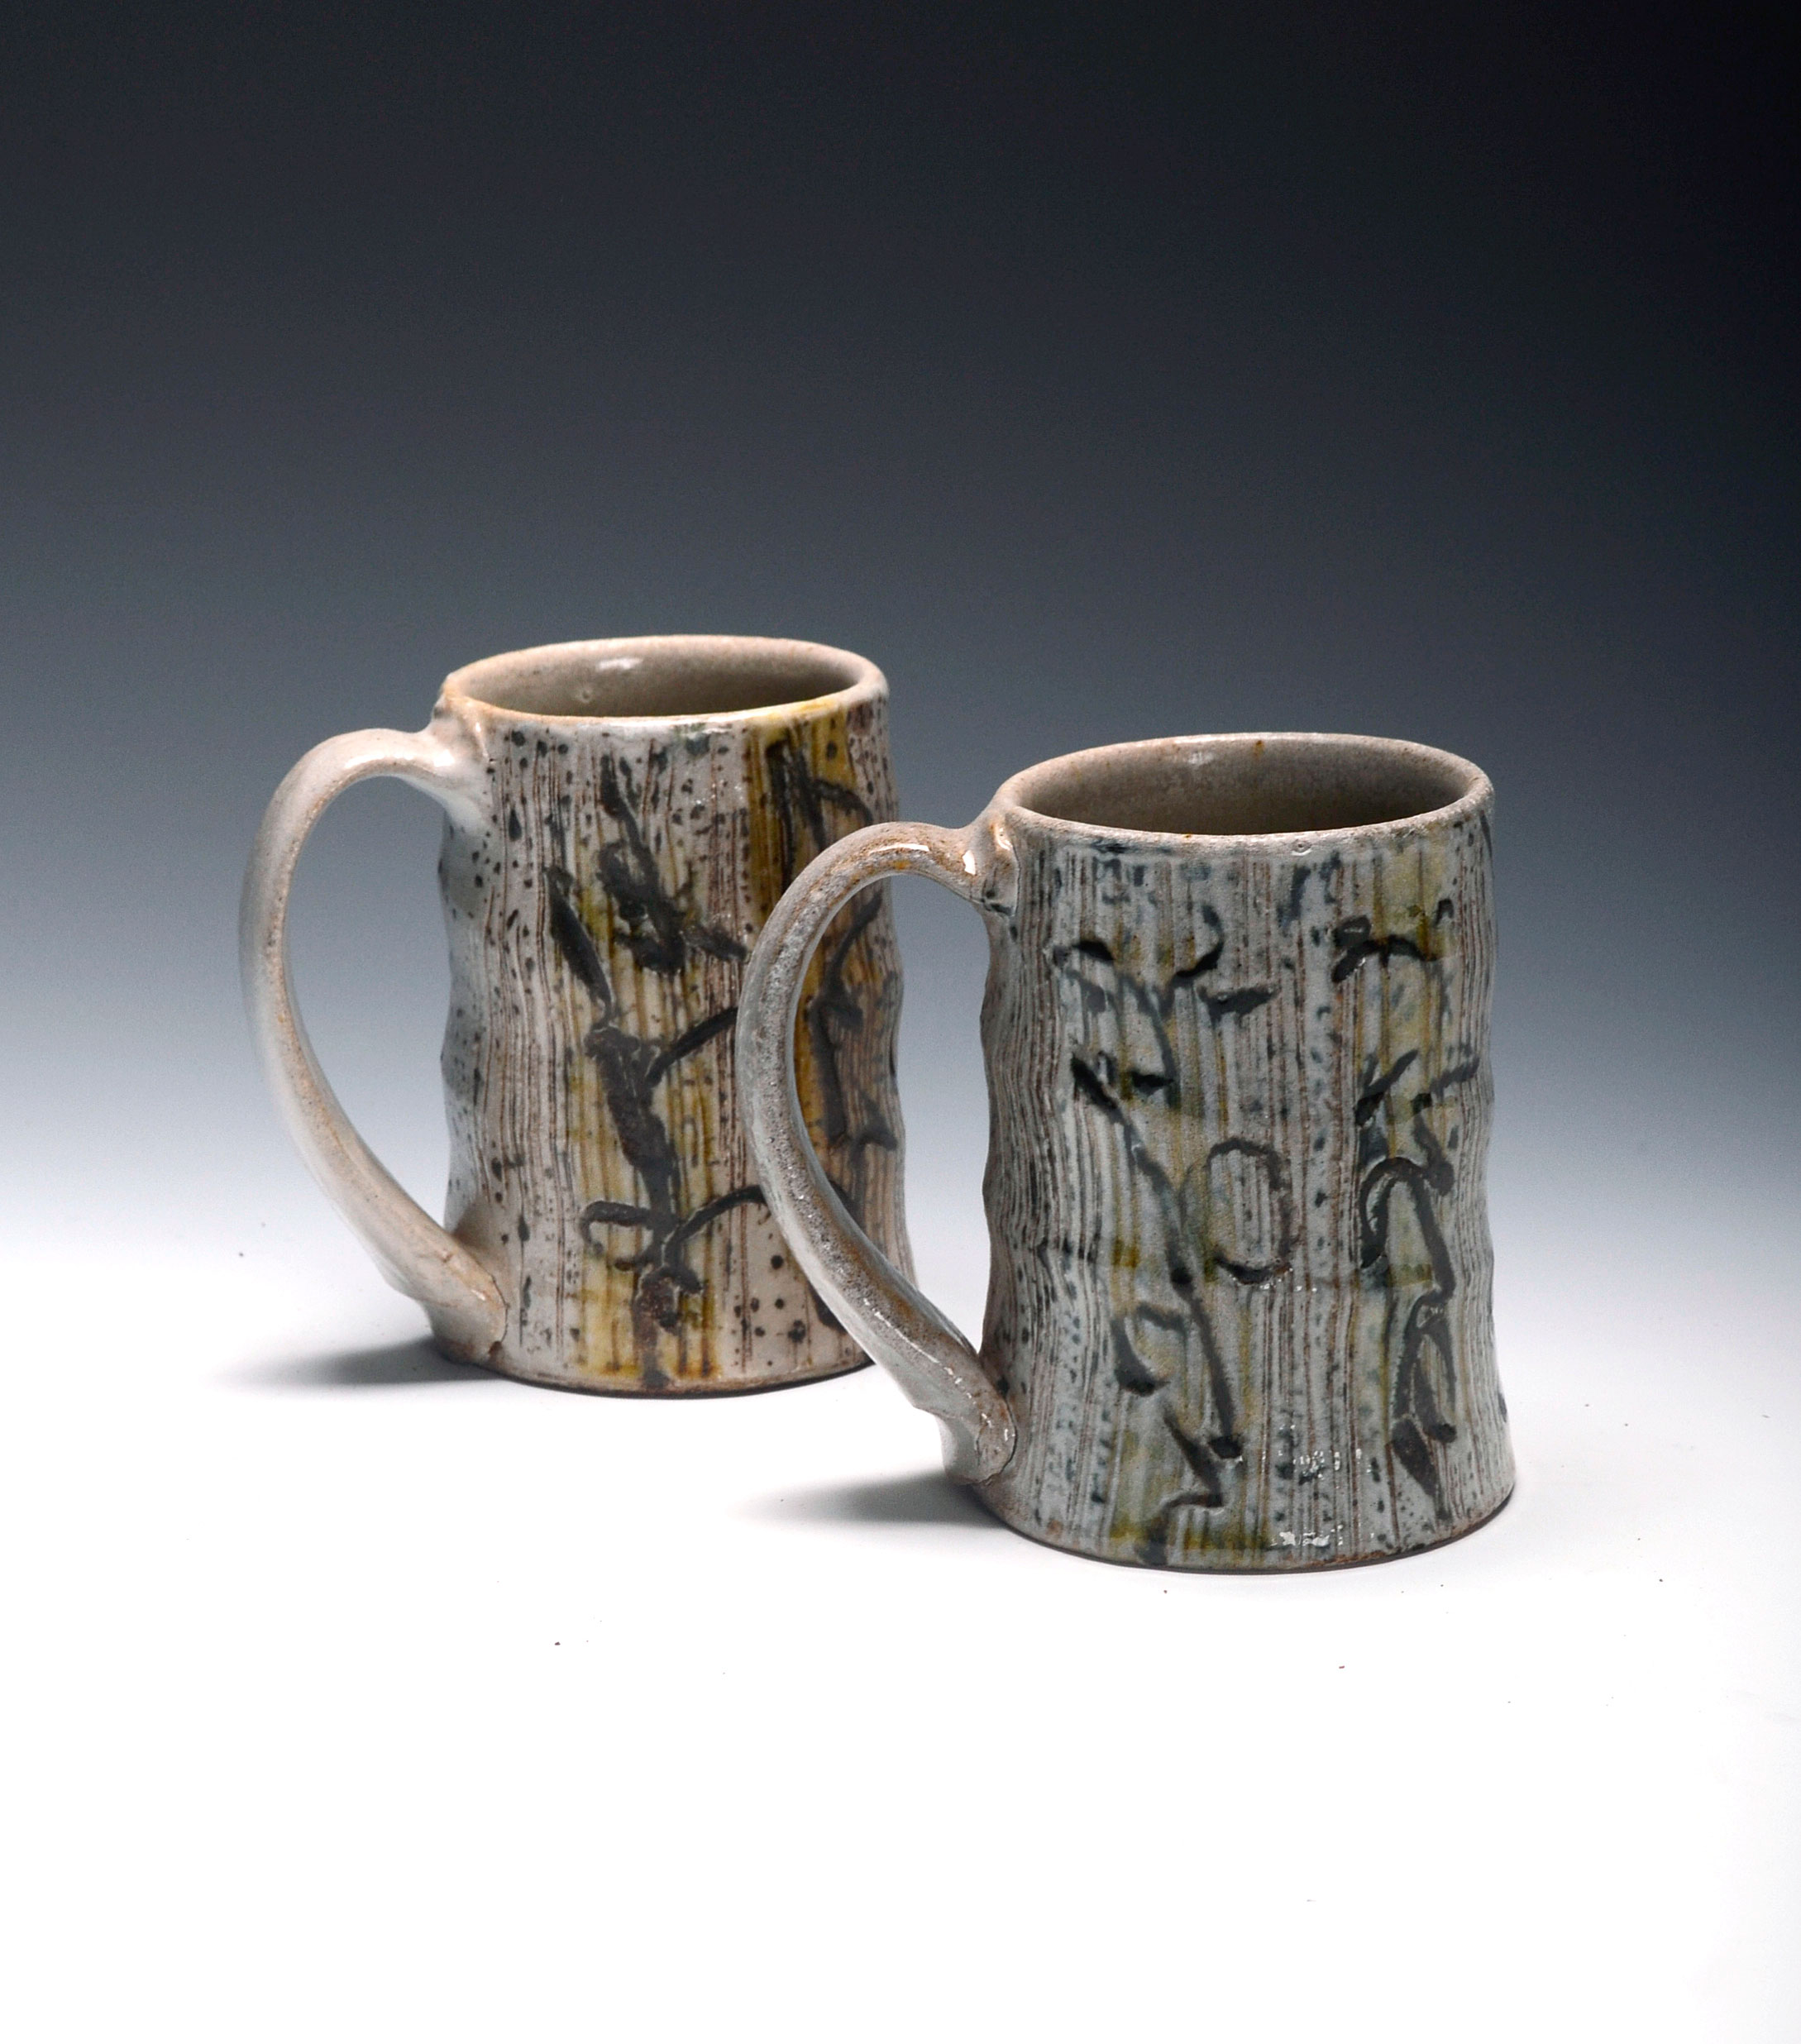 two-mugs-with-pours.jpg